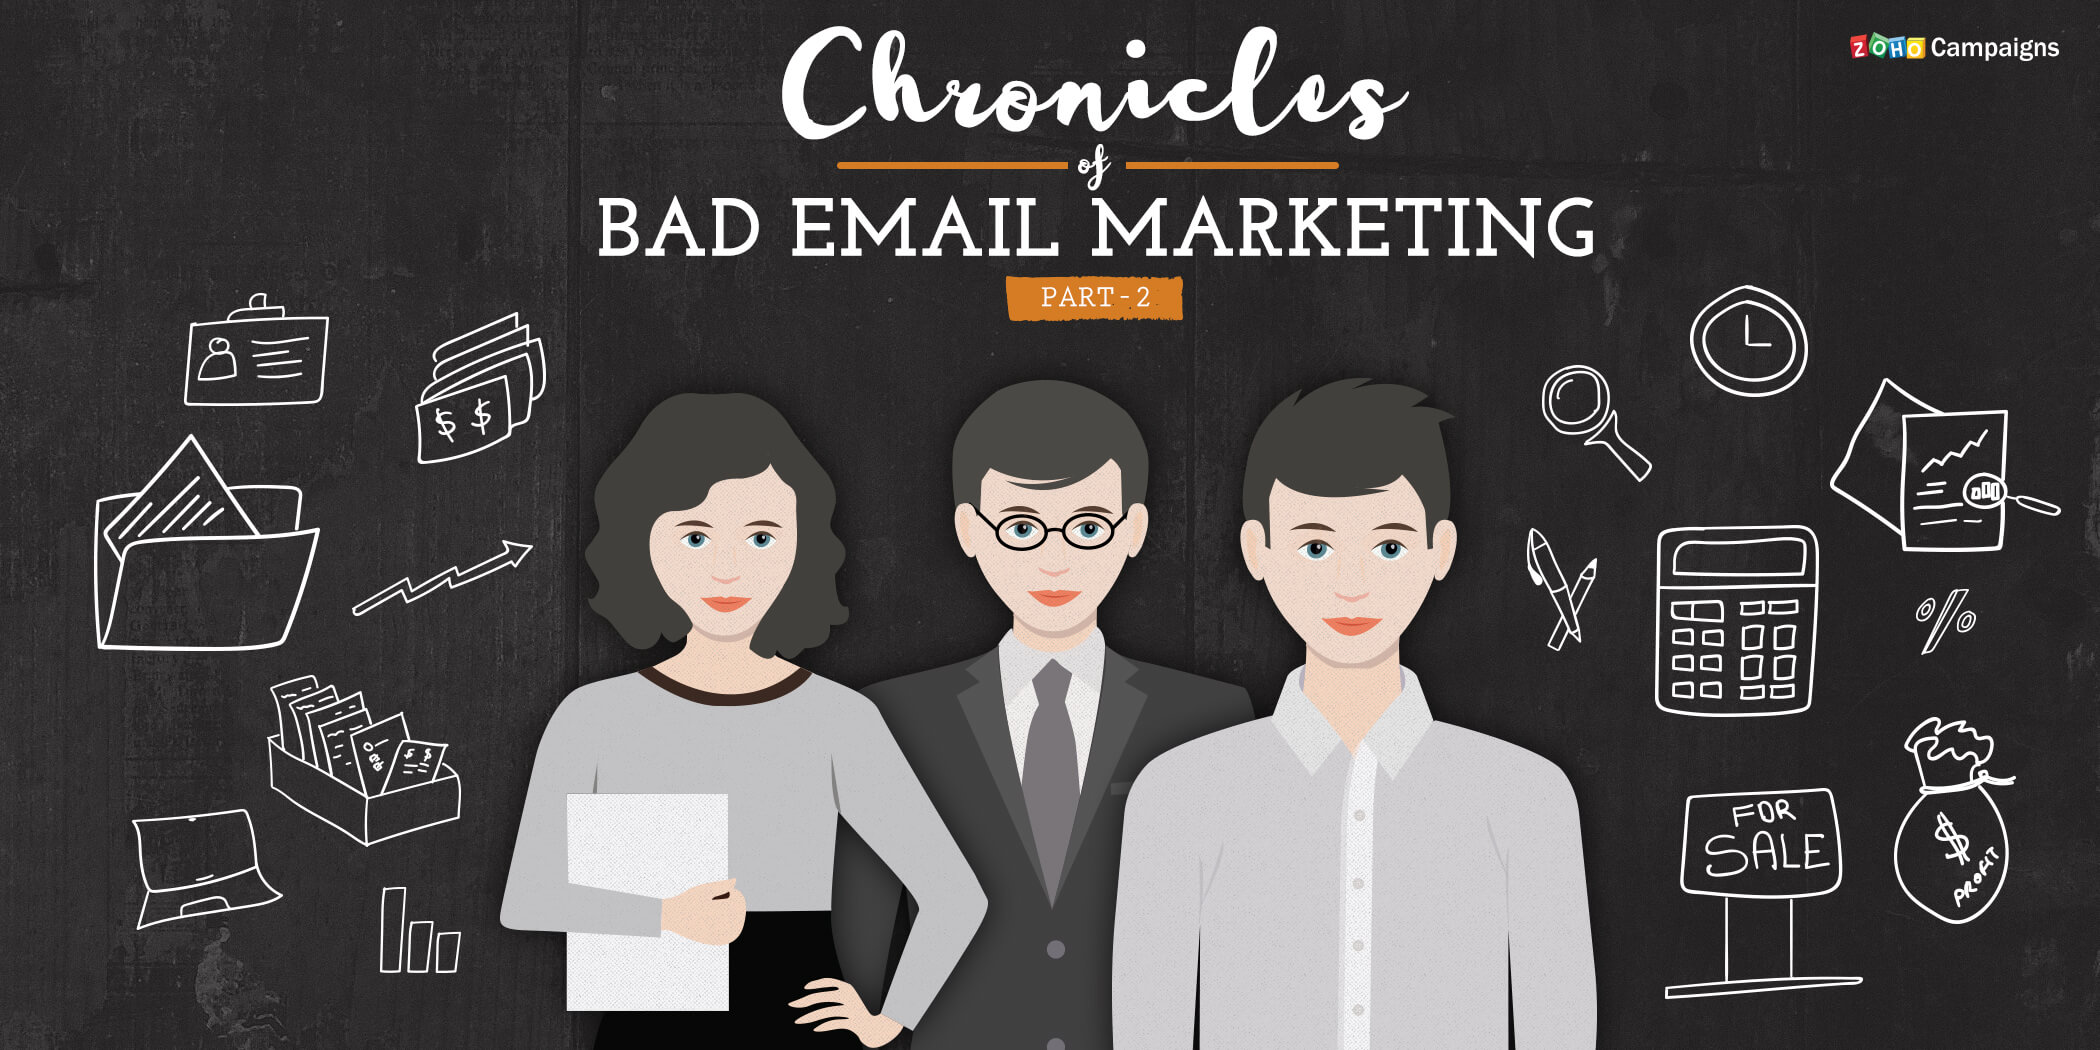 Chronicles of Bad Email Marketing (Part 2)